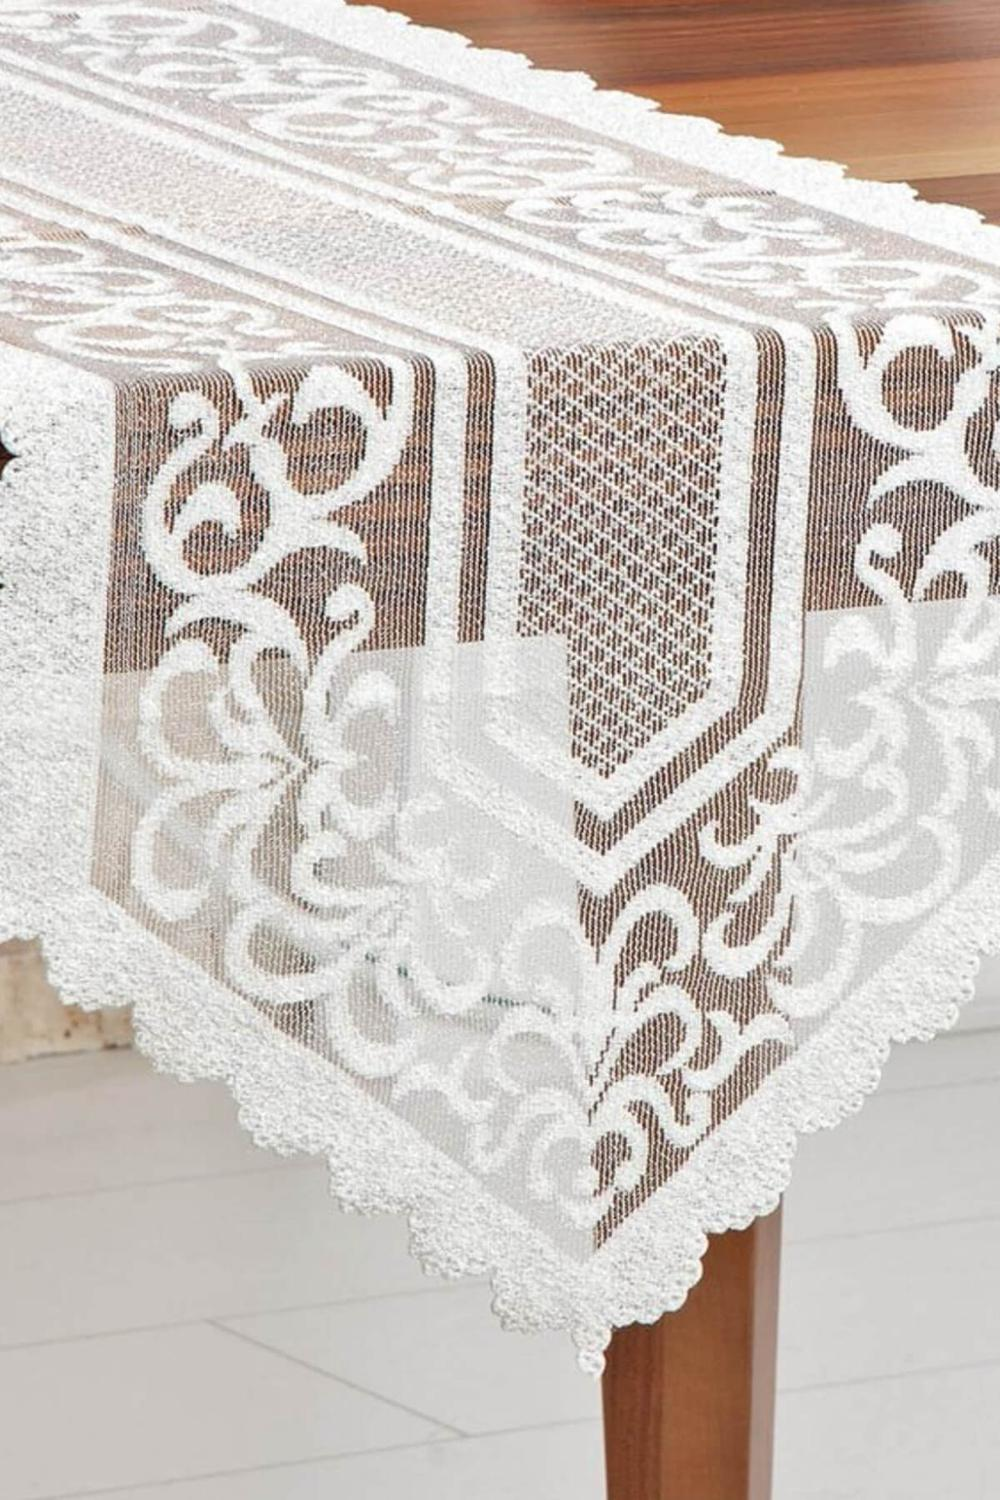 White Cream Embrodery Tulle Rectangular Table Cover For Dining Room Small Kitchen Table Runner For Wedding Birthday Baby Shower